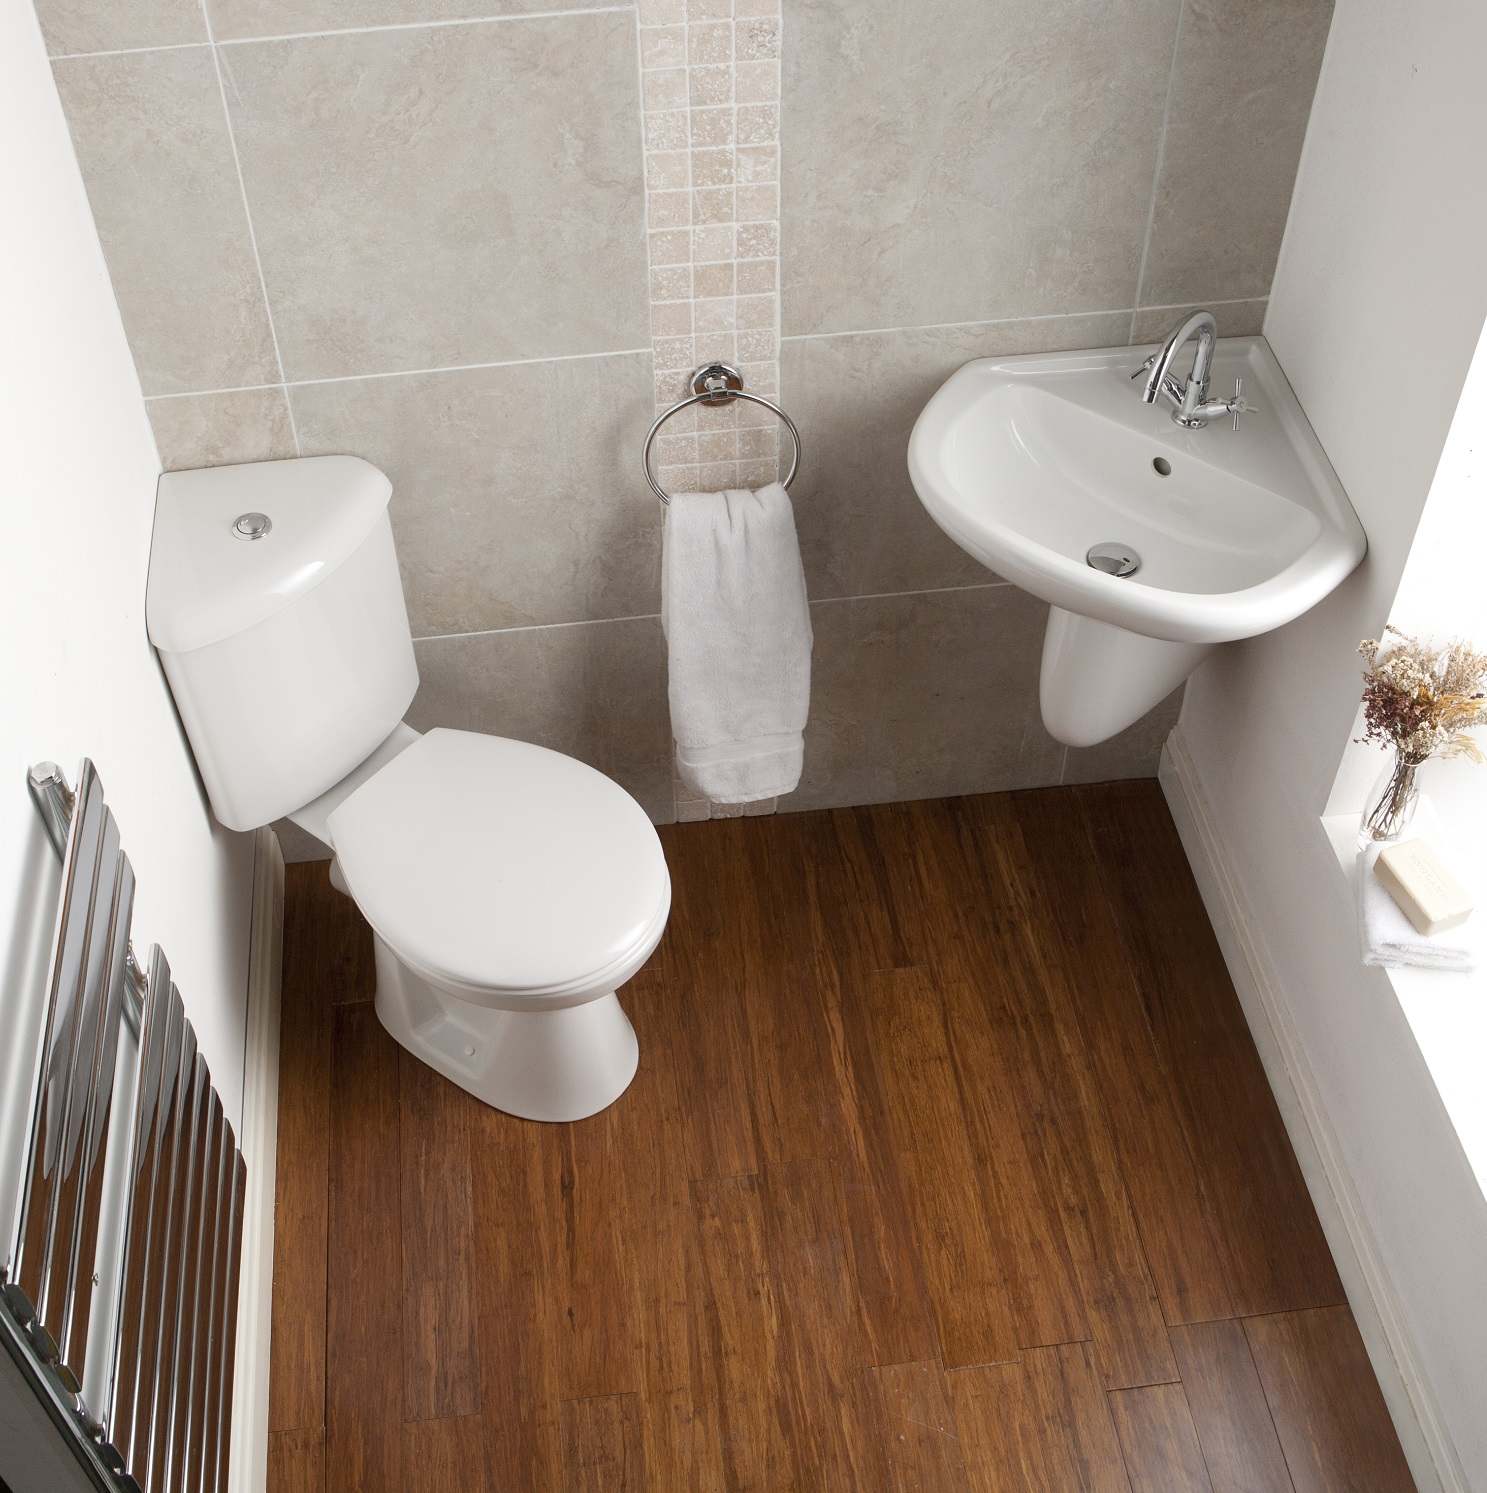 Cloakroom Ideas Images How To Choose A Toilet And Basin For A Cloakroom